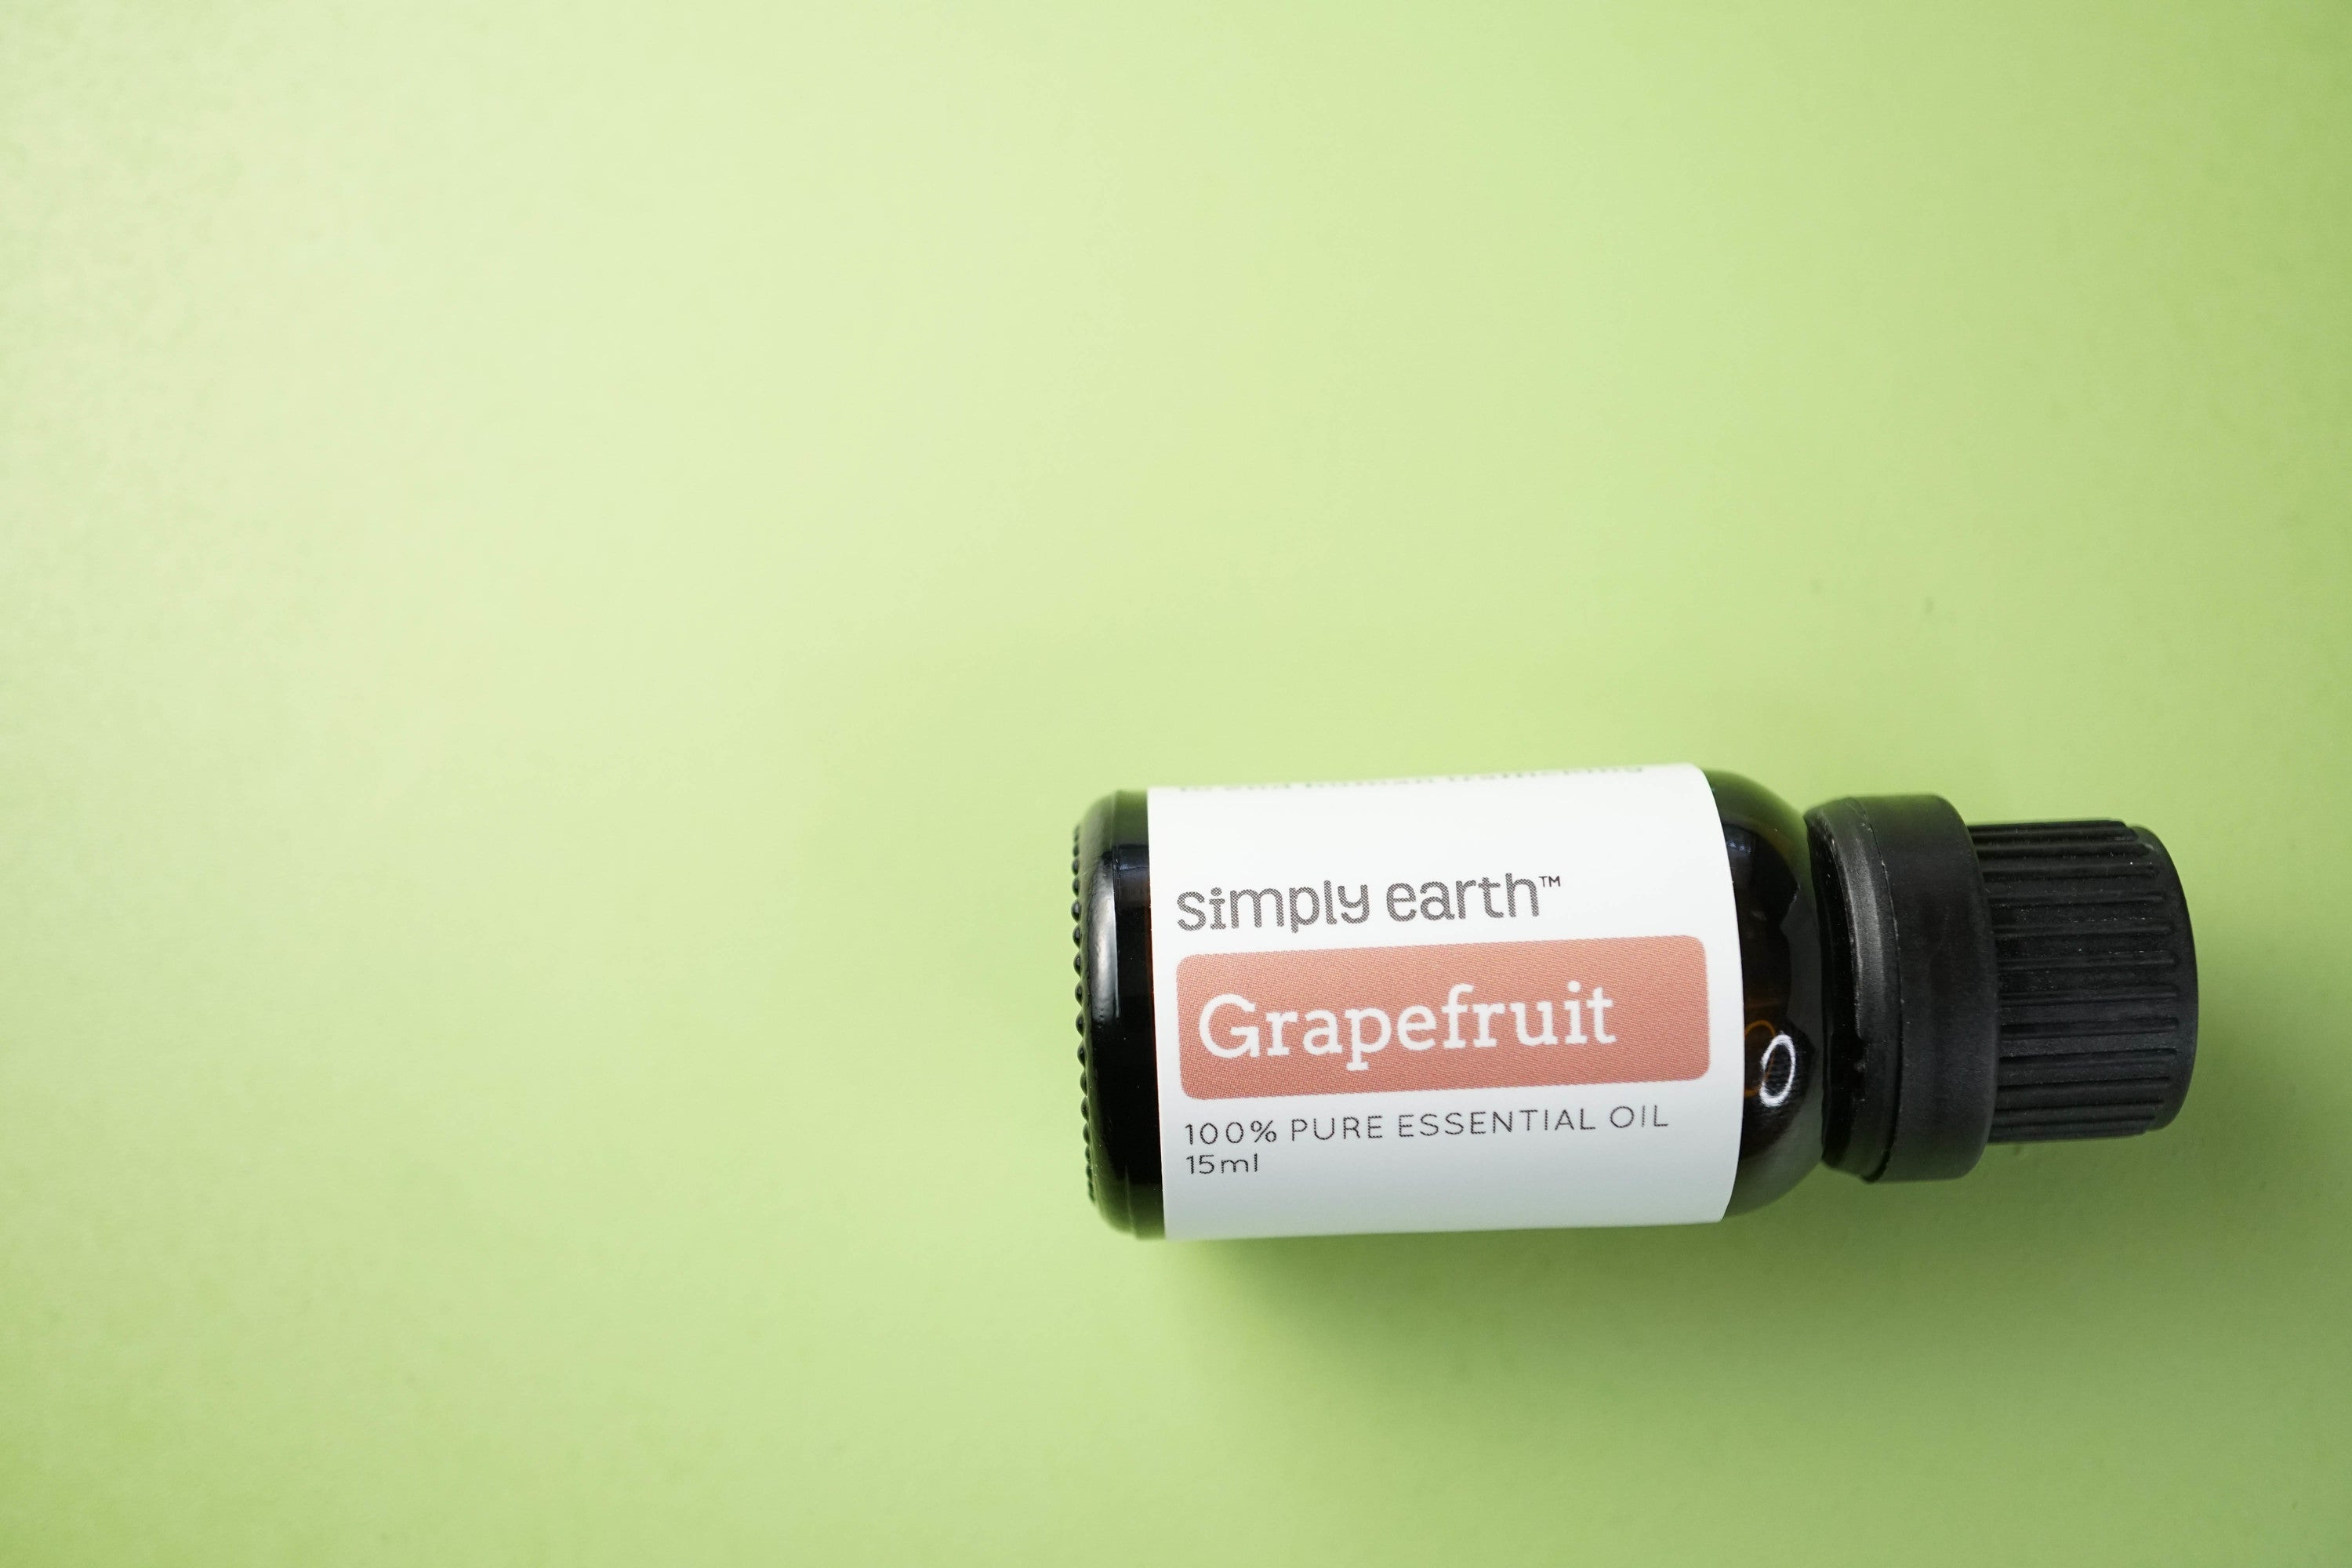 Grapefruit Essential Oil Benefits and Uses, Grapefruit Essential Oil